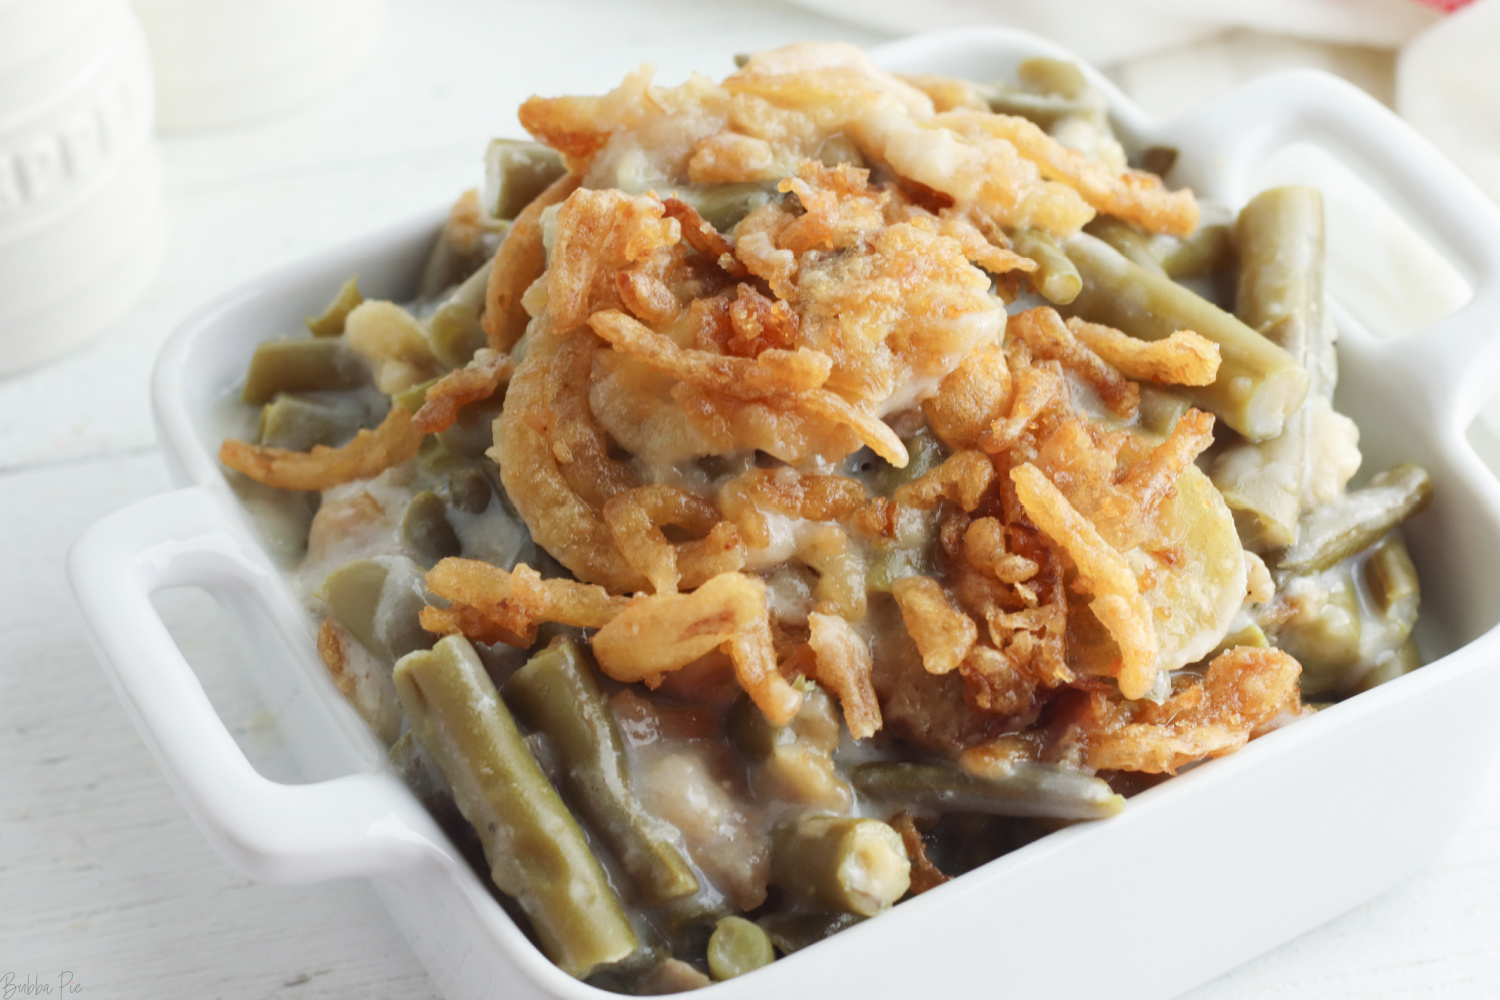 Crockpot Green Bean Casserole being served as a holiday side dish.